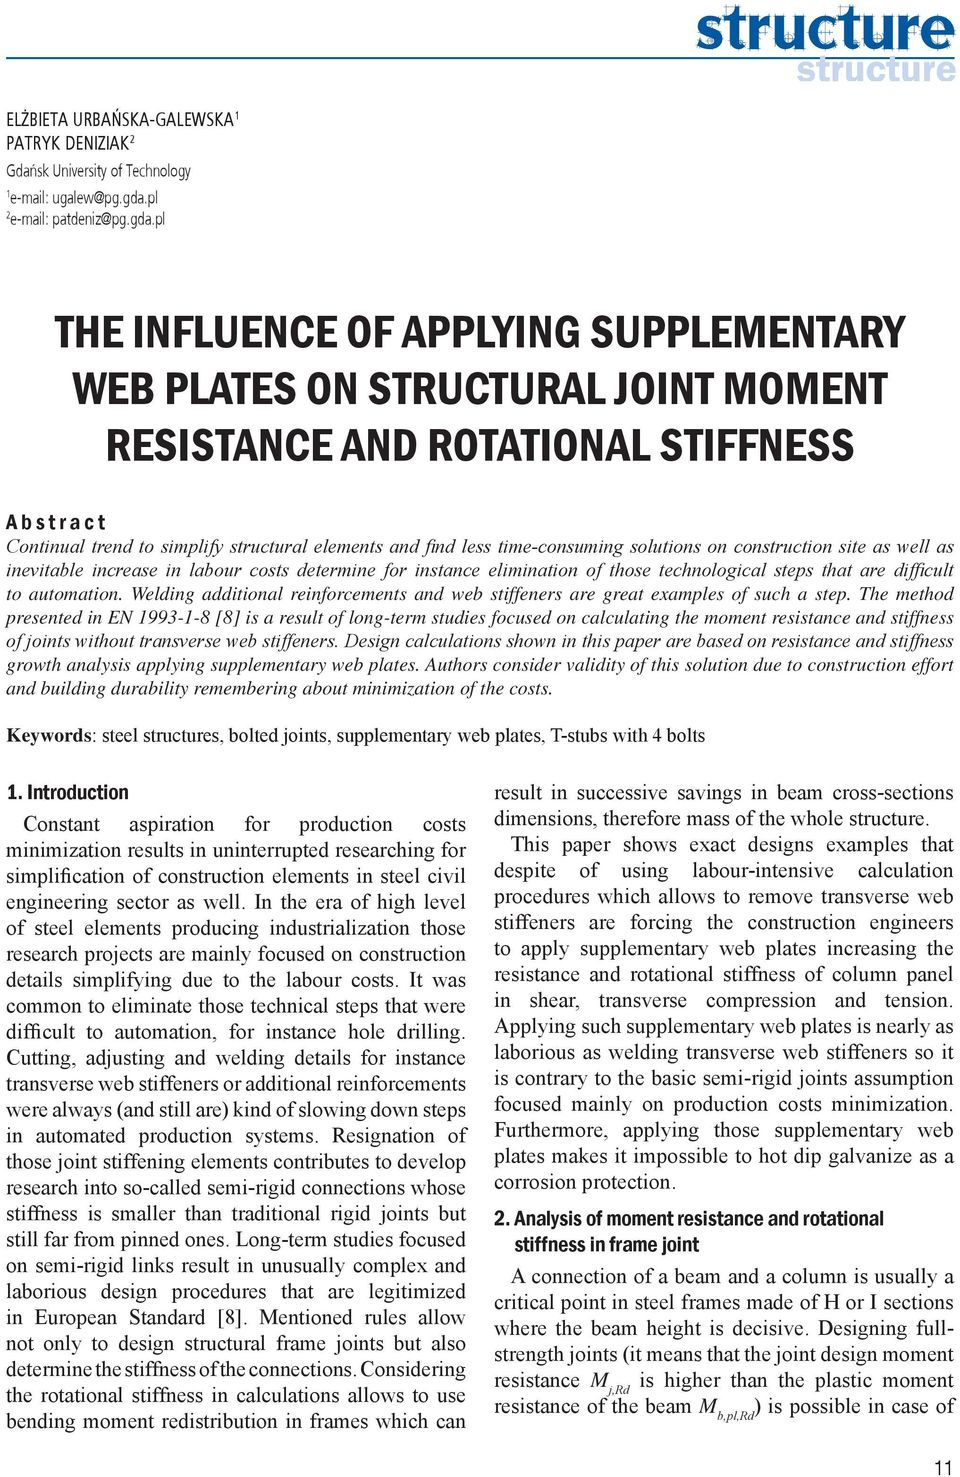 pl THE INFLUENCE OF APPLYING SUPPLEMENTARY WEB PLATES ON STRUCTURAL JOINT MOMENT RESISTANCE AND ROTATIONAL STIFFNESS A b s t r a c t Continual trend to simplify structural elements and find less